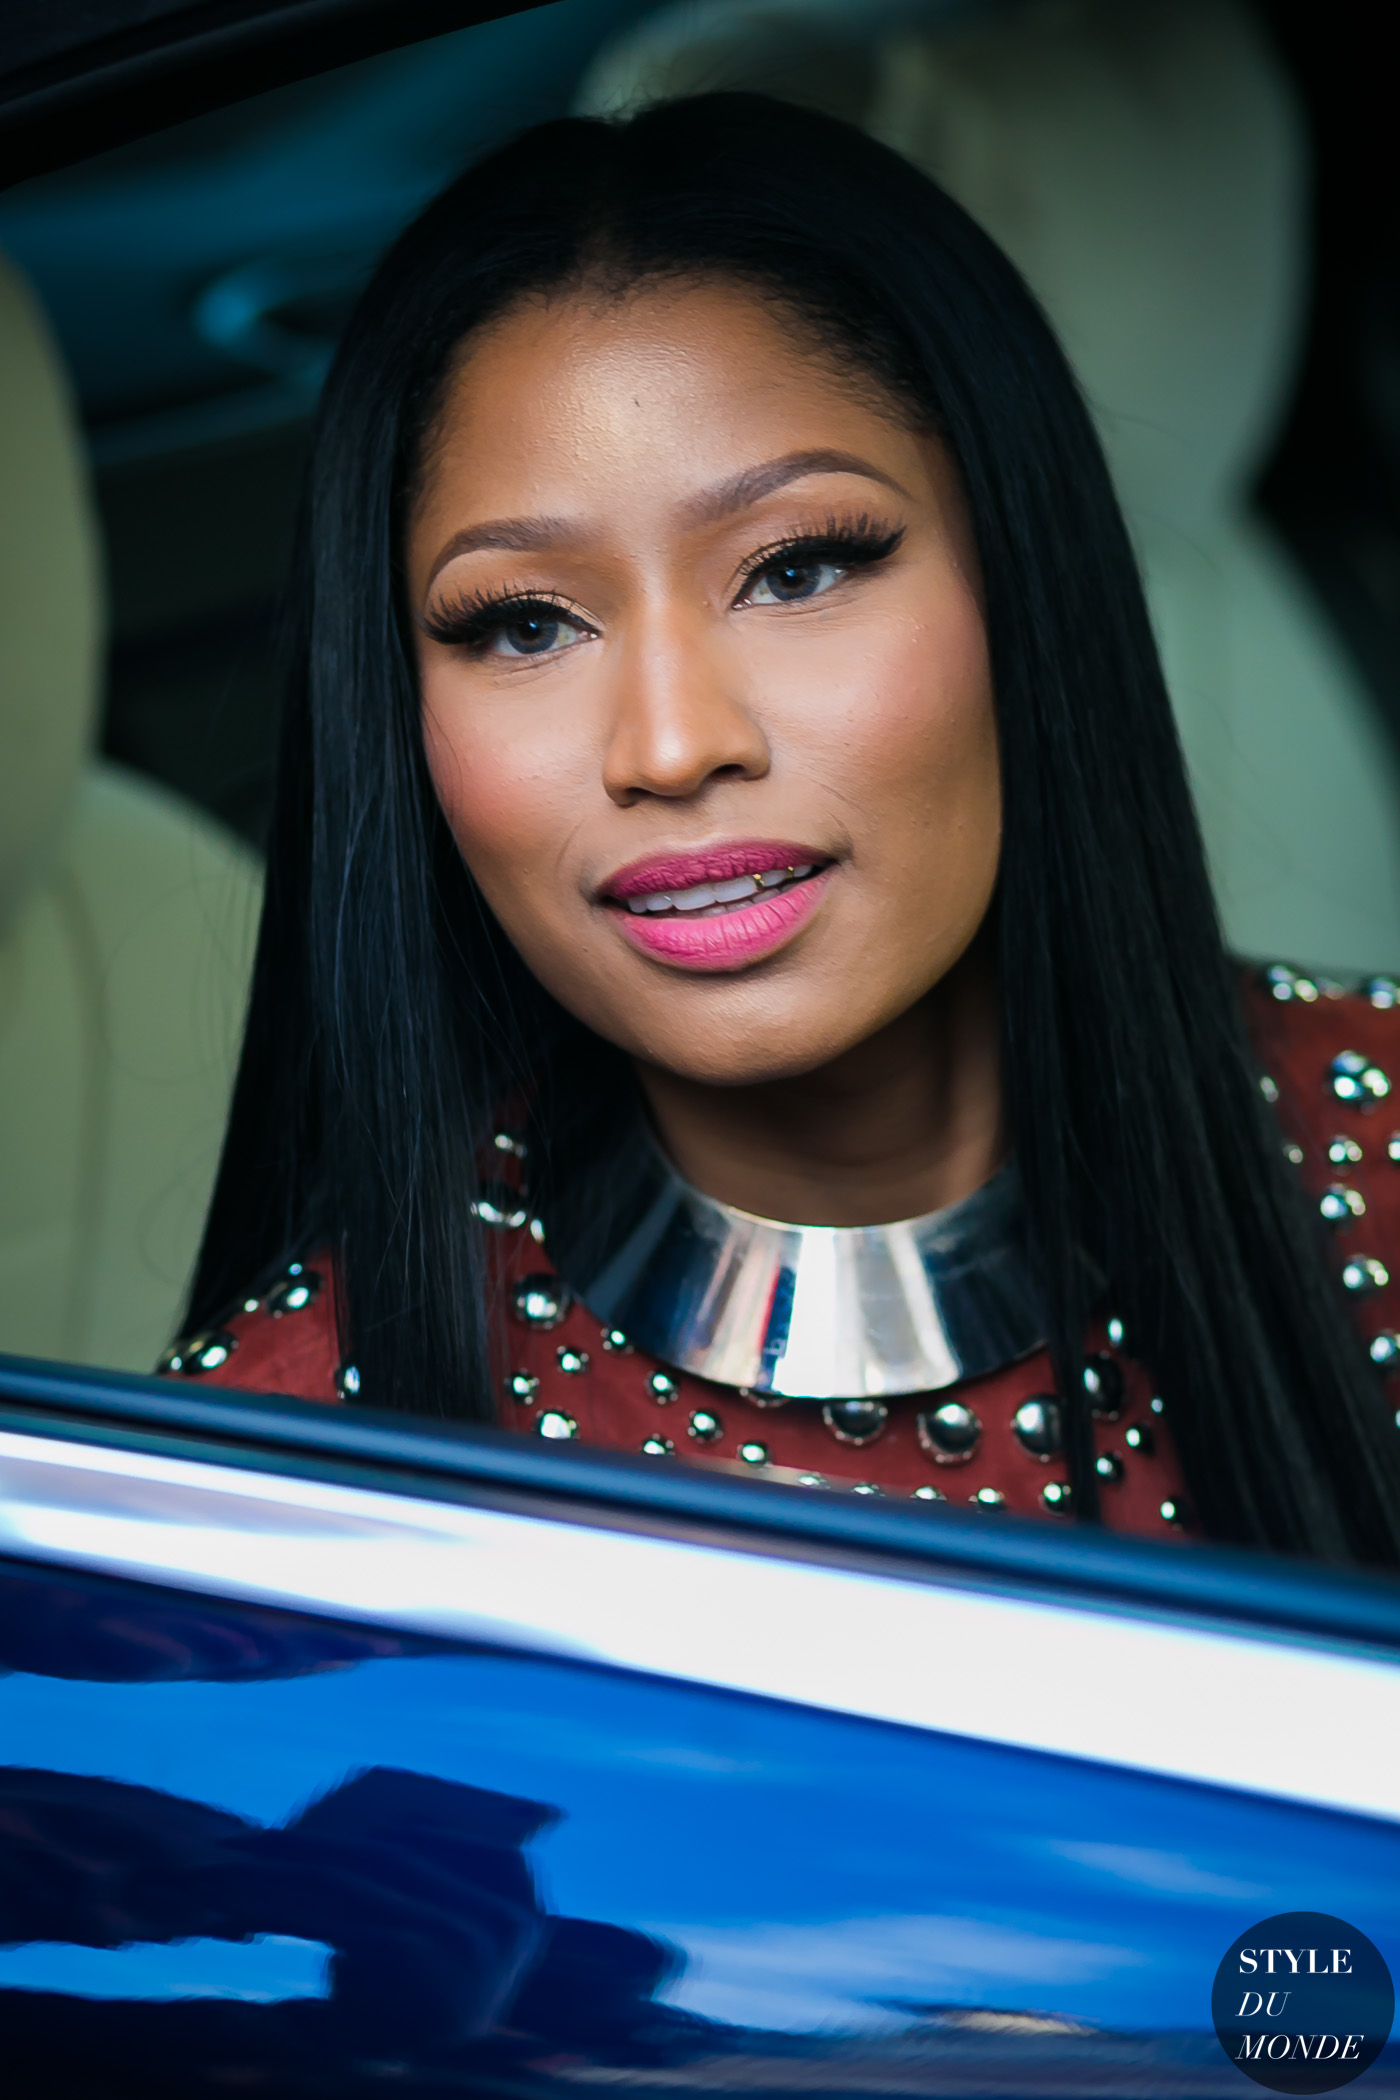 Nicki Minaj by STYLEDUMONDE Street Style Fashion Photography